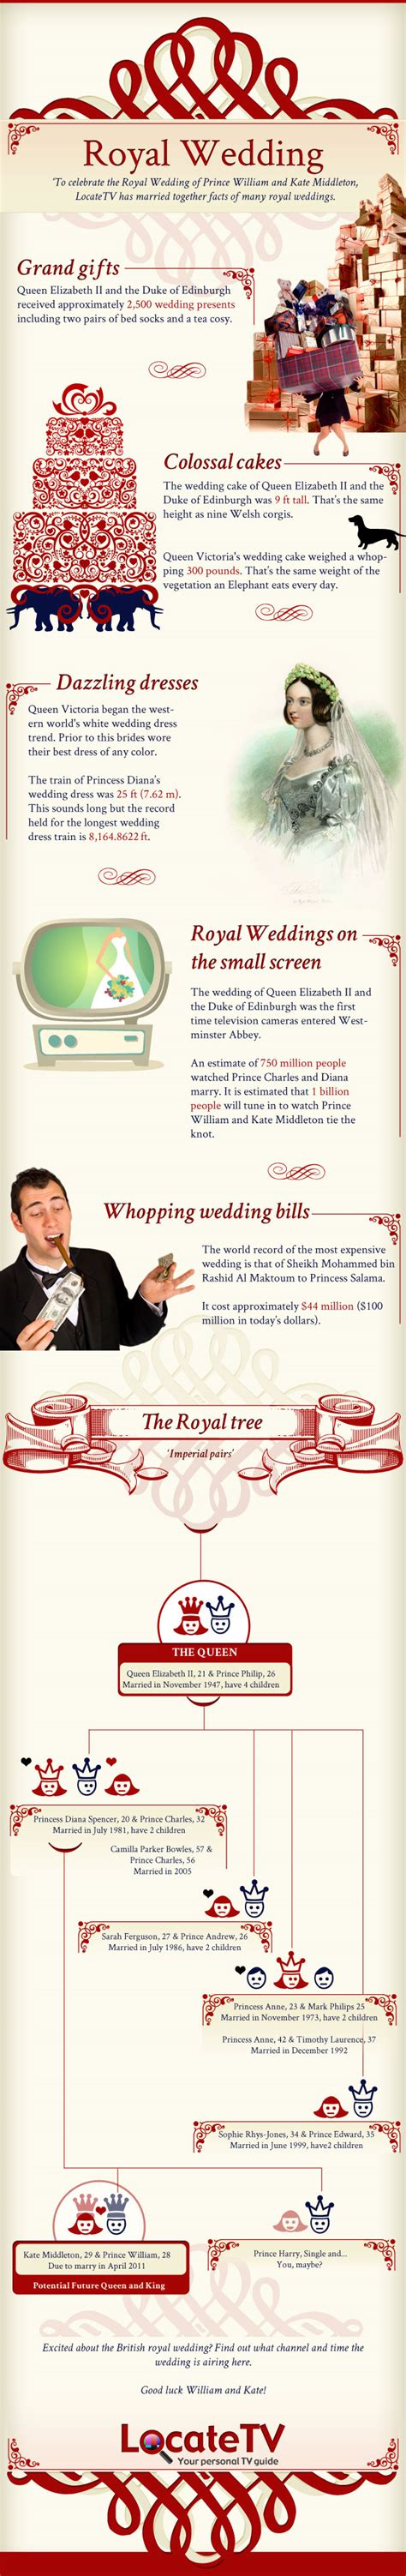 Wedding Facts by Wedding Infographic Imperial Royal Wedding Facts